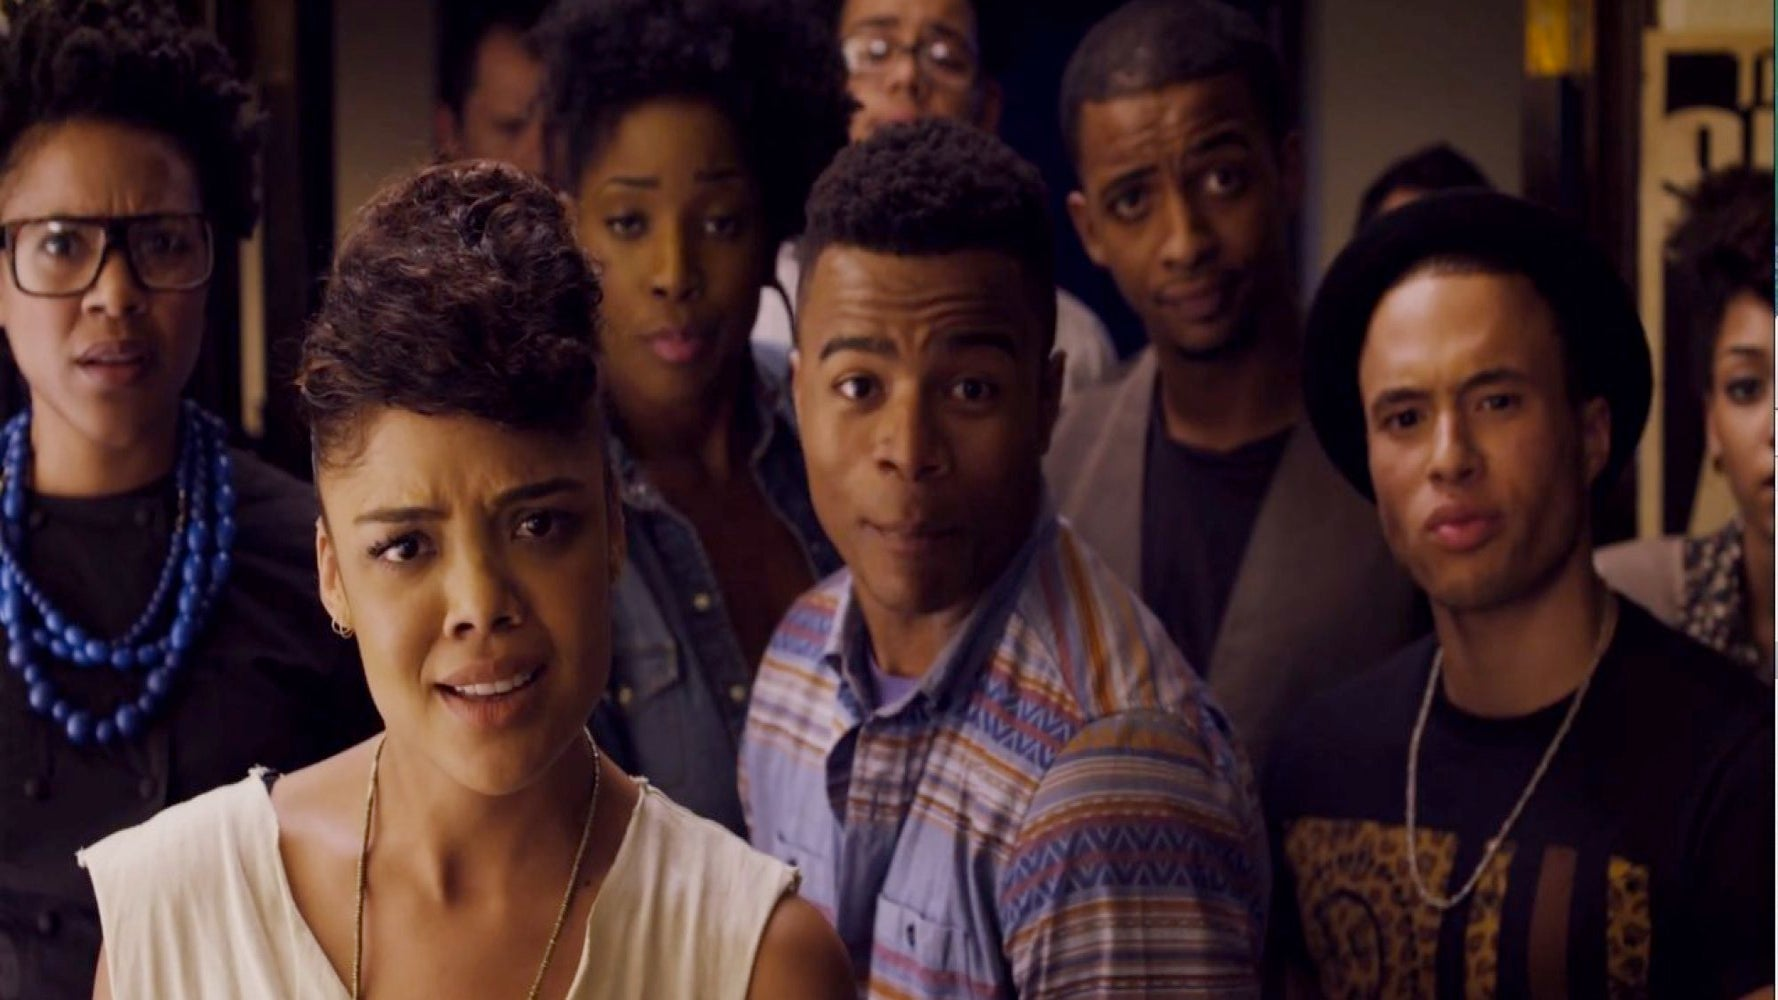 Hairstylist of 'Dear White People' Talks Hair on Set, Explains What White's Should Know About Our Hair